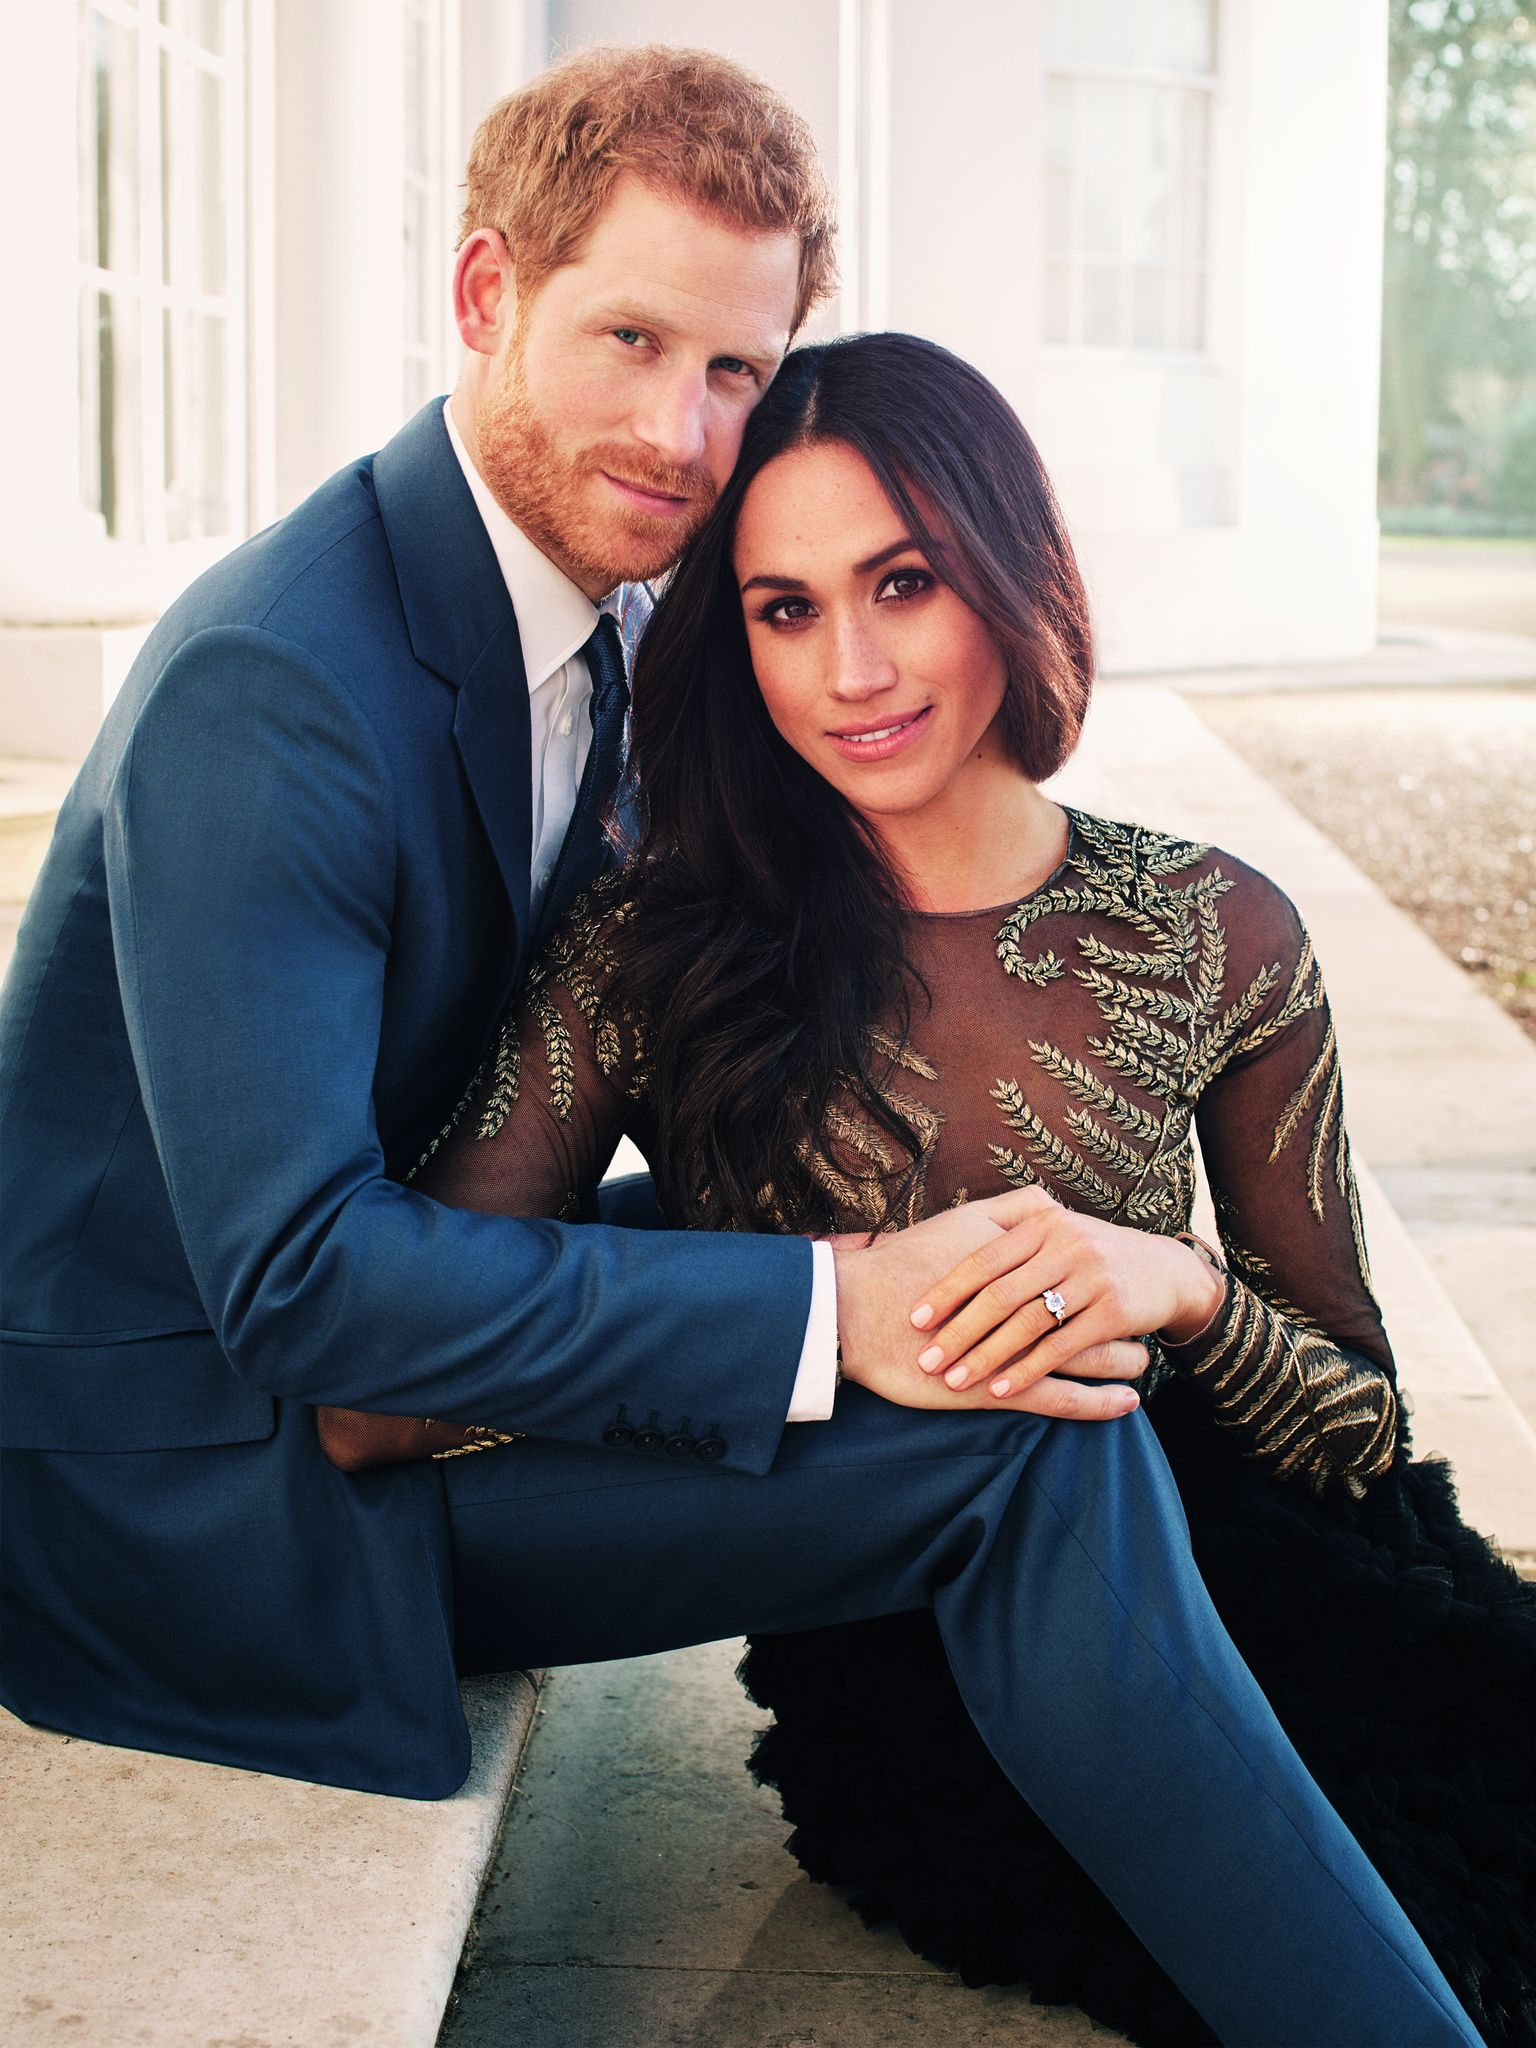 L'engagement du Prince Harry et Meghan Markle | Getty Images / Global Images Ukraine